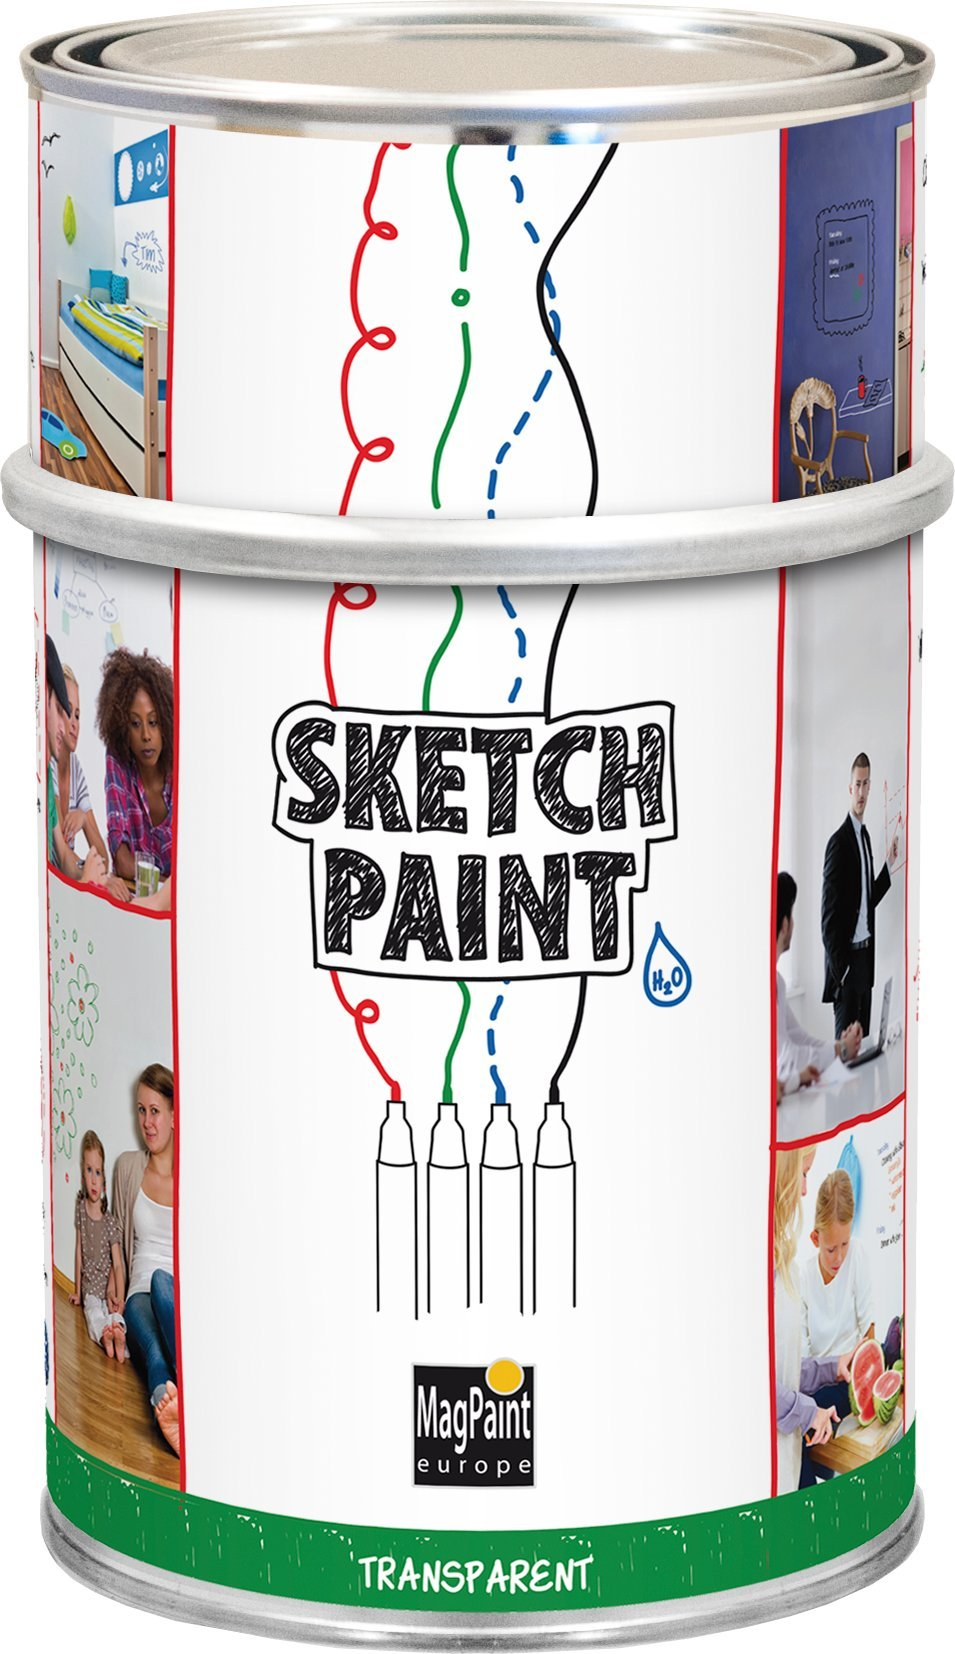 Magpaint Sketch Paint Whiteboard Paints Transparent 1 Litre